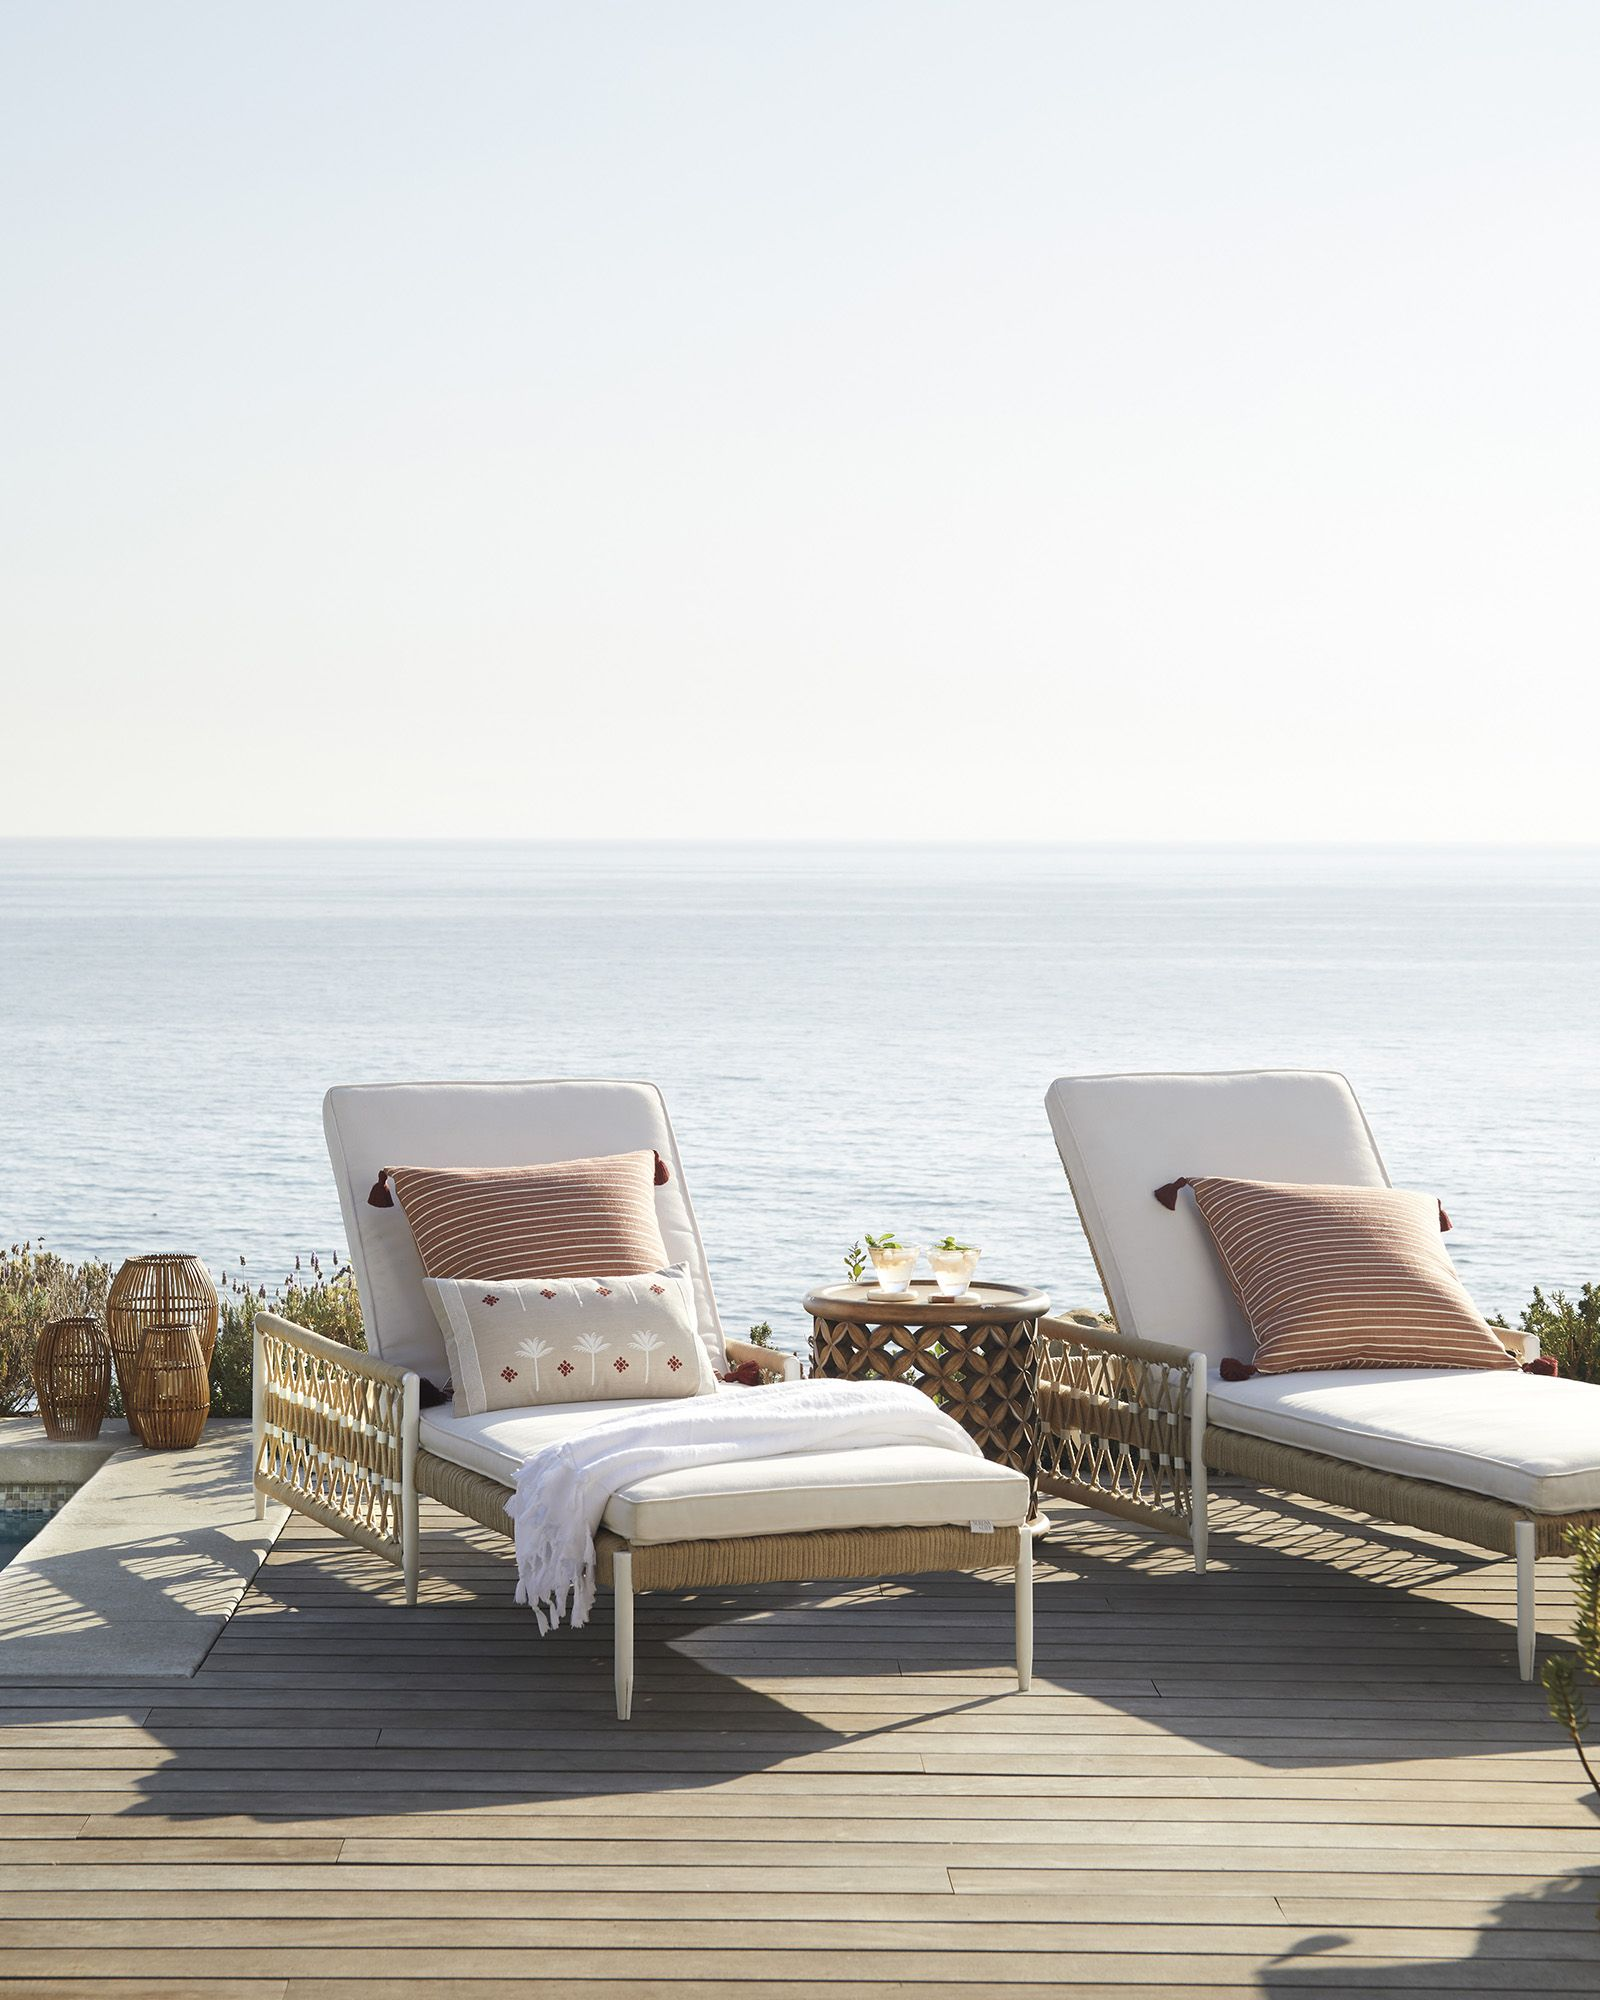 11 Best Pool Lounge Chairs In 2020 Outdoor Chaise Lounges For Pools